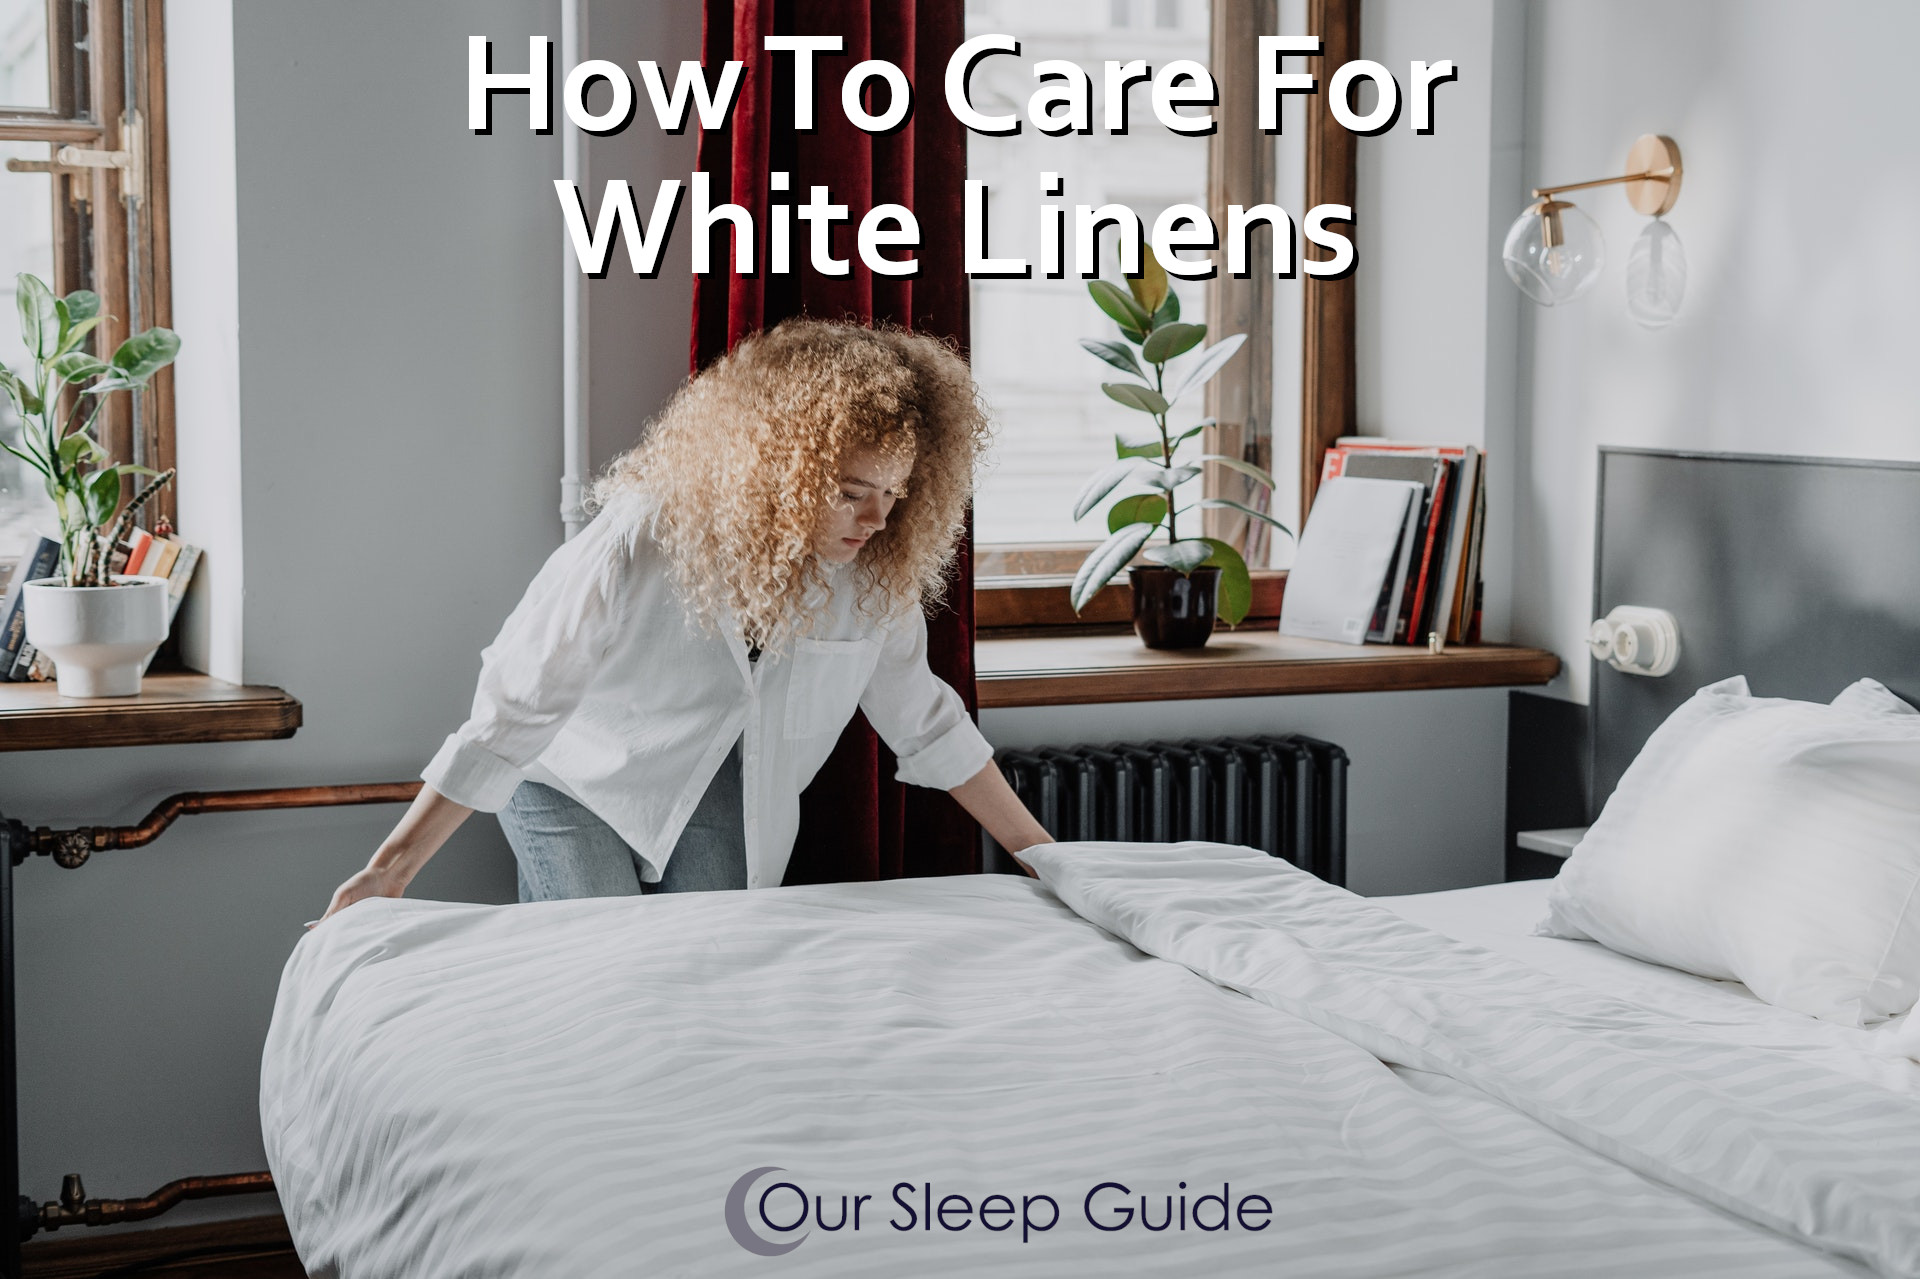 Caring For White Linens